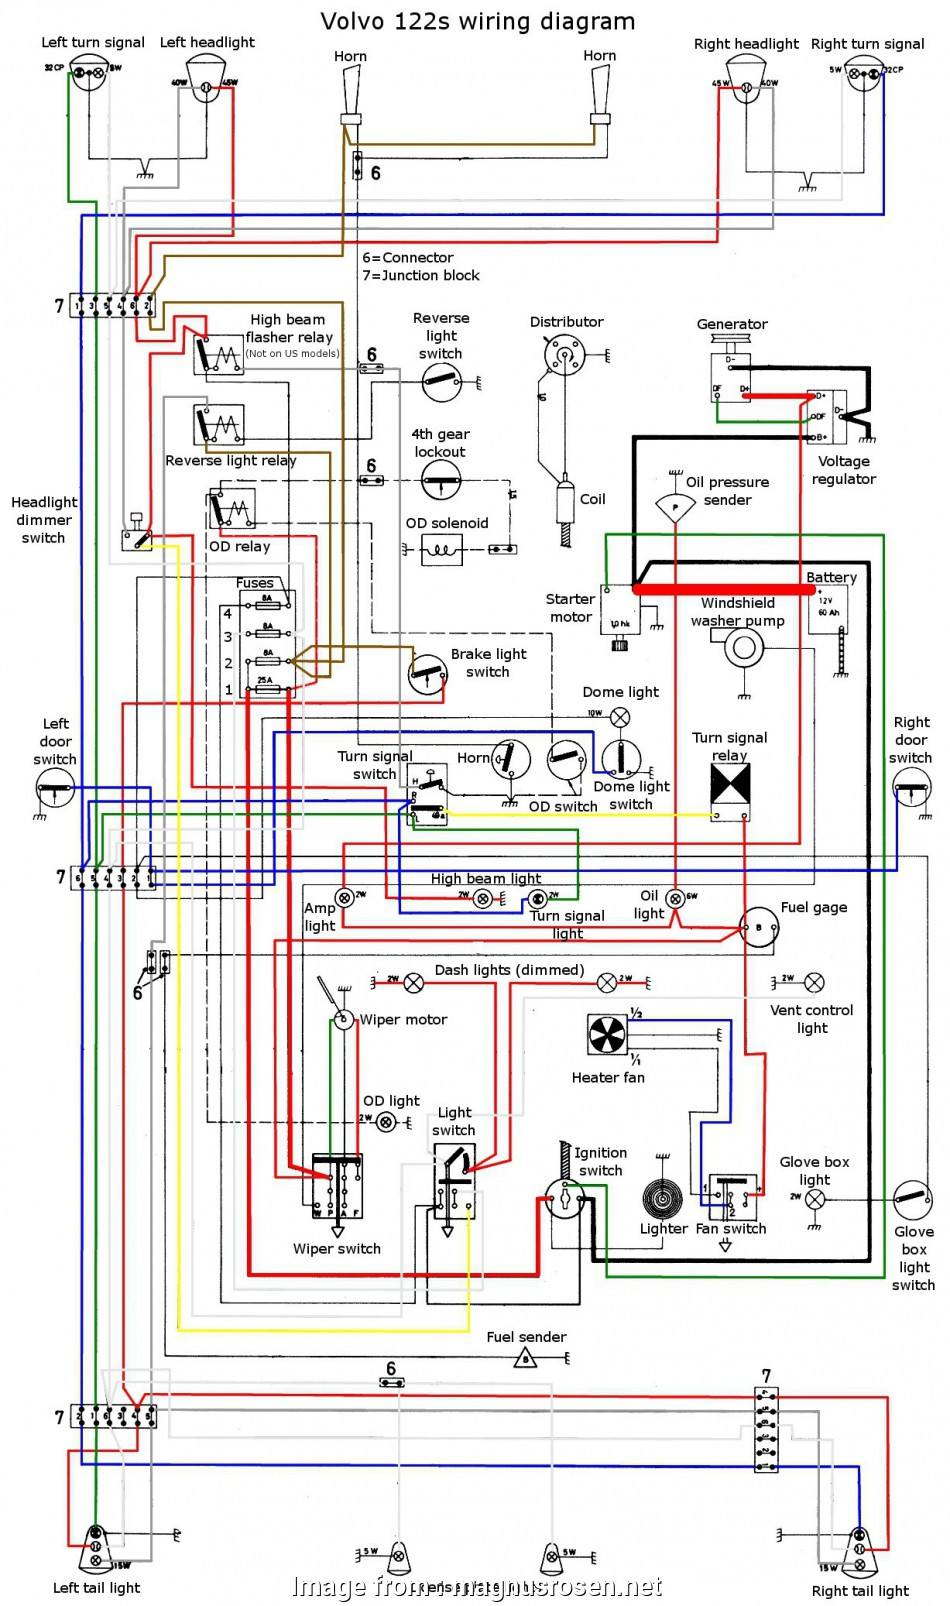 amp research power step wiring diagram Amp Research Power Step Wiring Diagram Elegant Mobile Home Amp Research Power Step Wiring Diagram Practical Amp Research Power Step Wiring Diagram Elegant Mobile Home Galleries